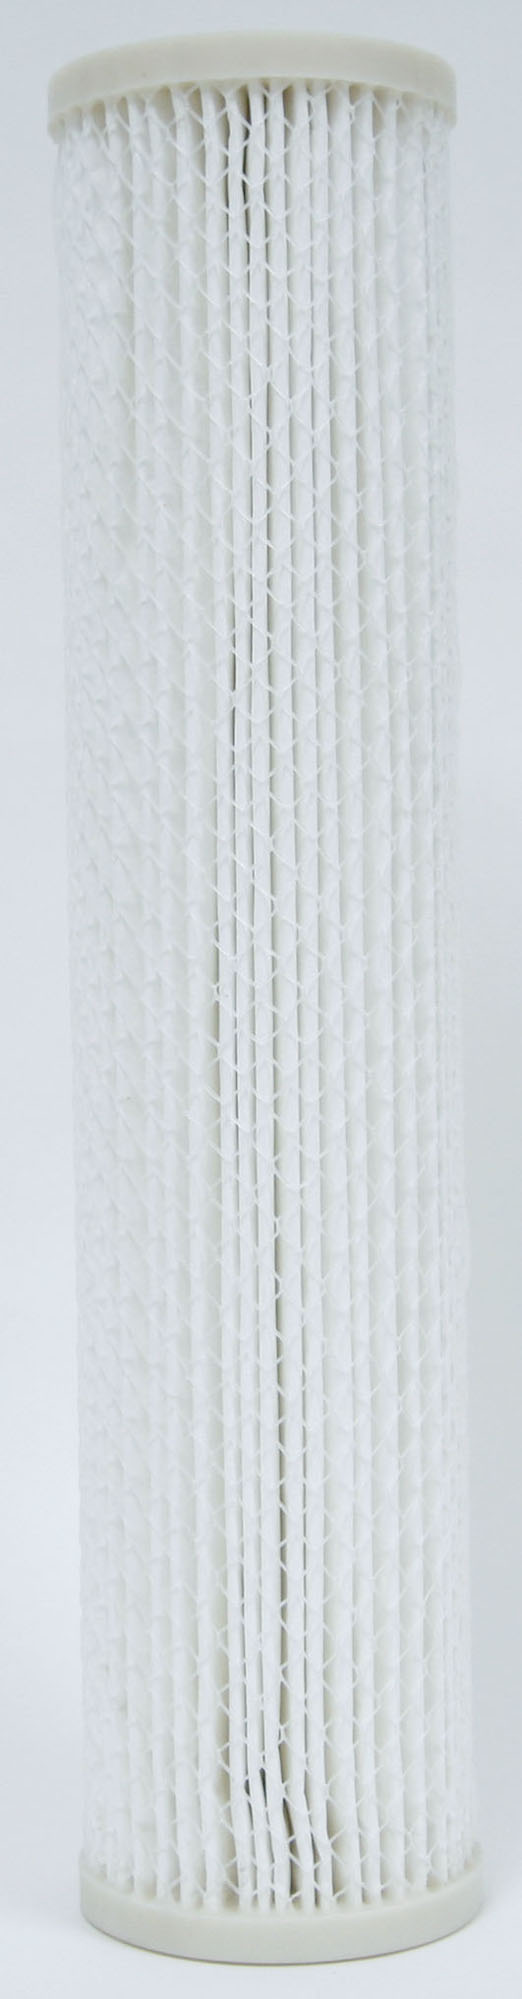 Ultra-Pleat 02 Micron Absolute High Flow Filter Cartridges